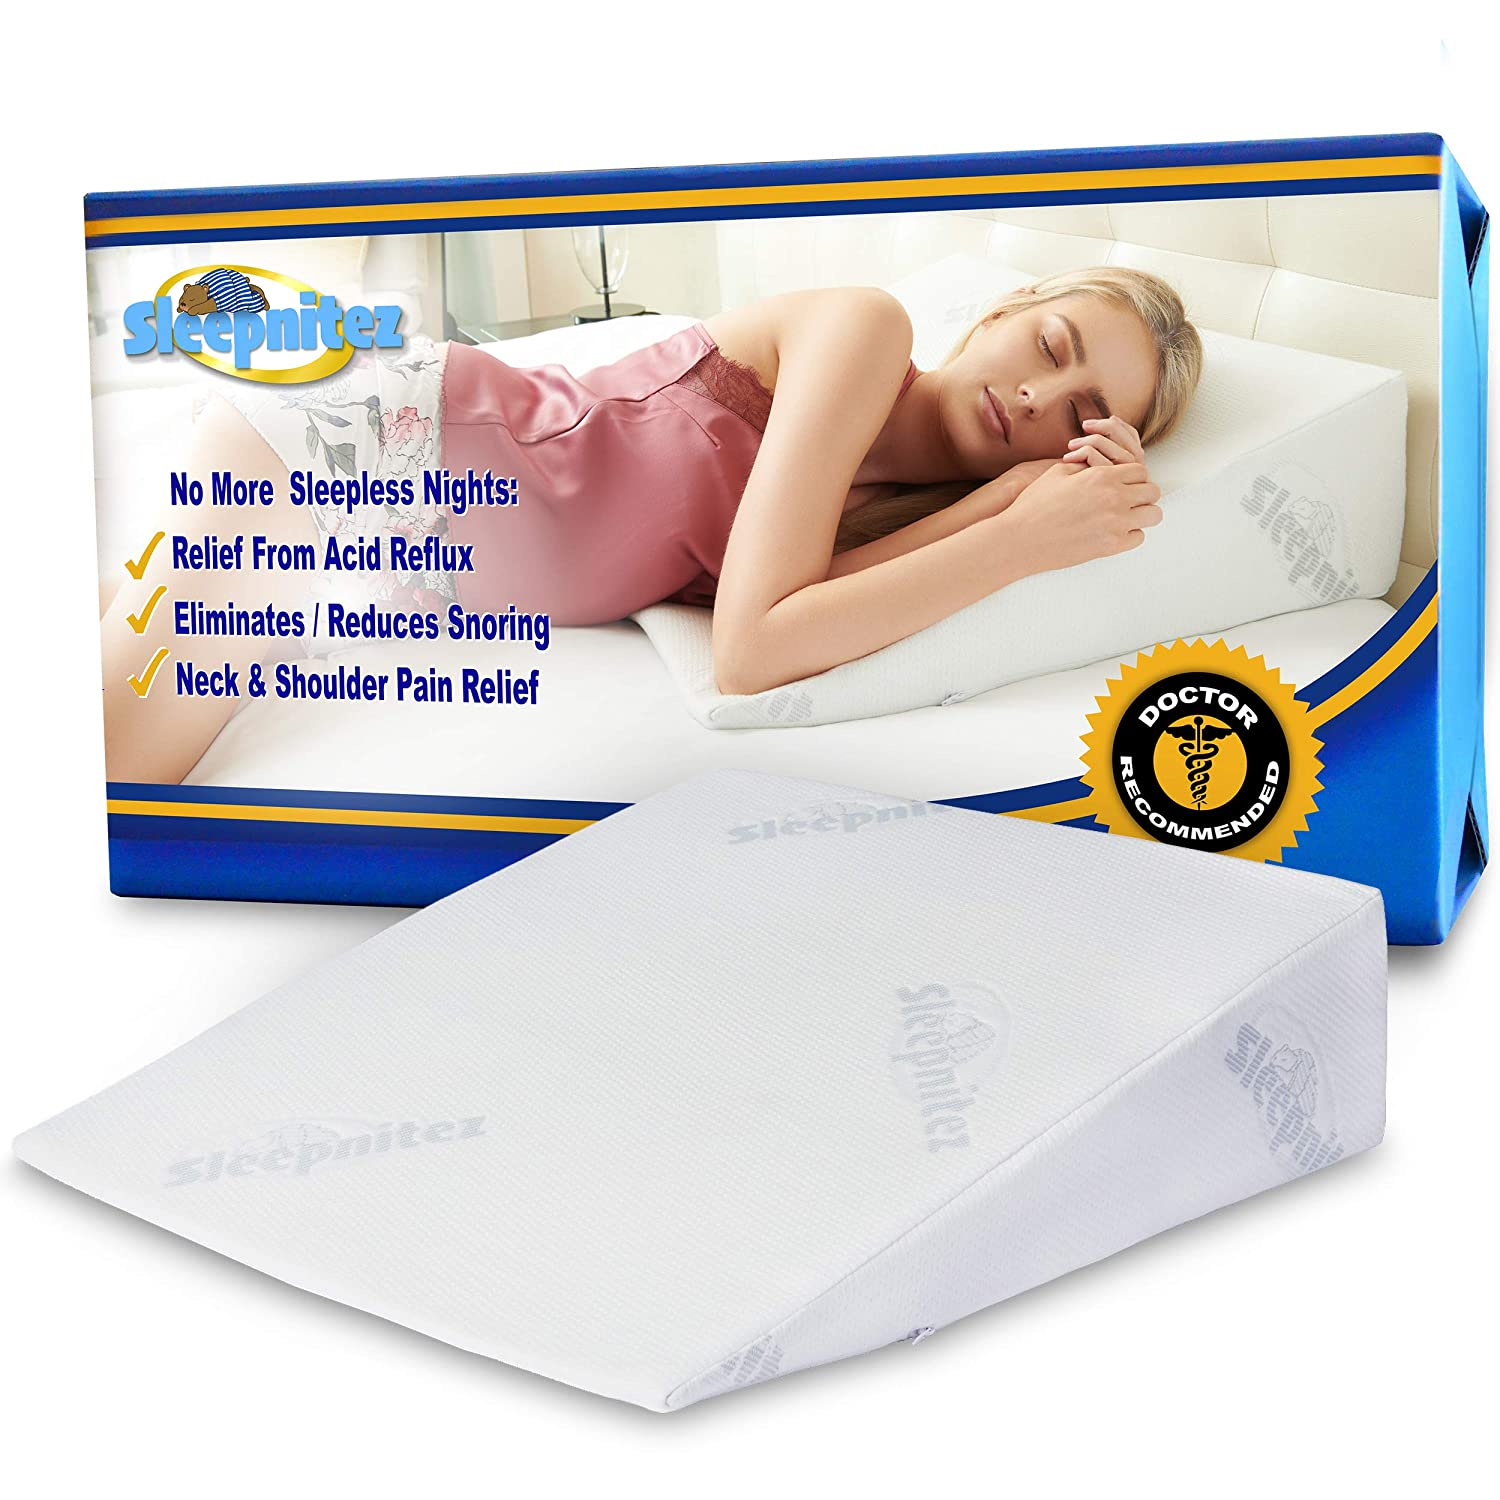 "Sleepnitez 8"" Wedge Pillow for Acid Reflux"